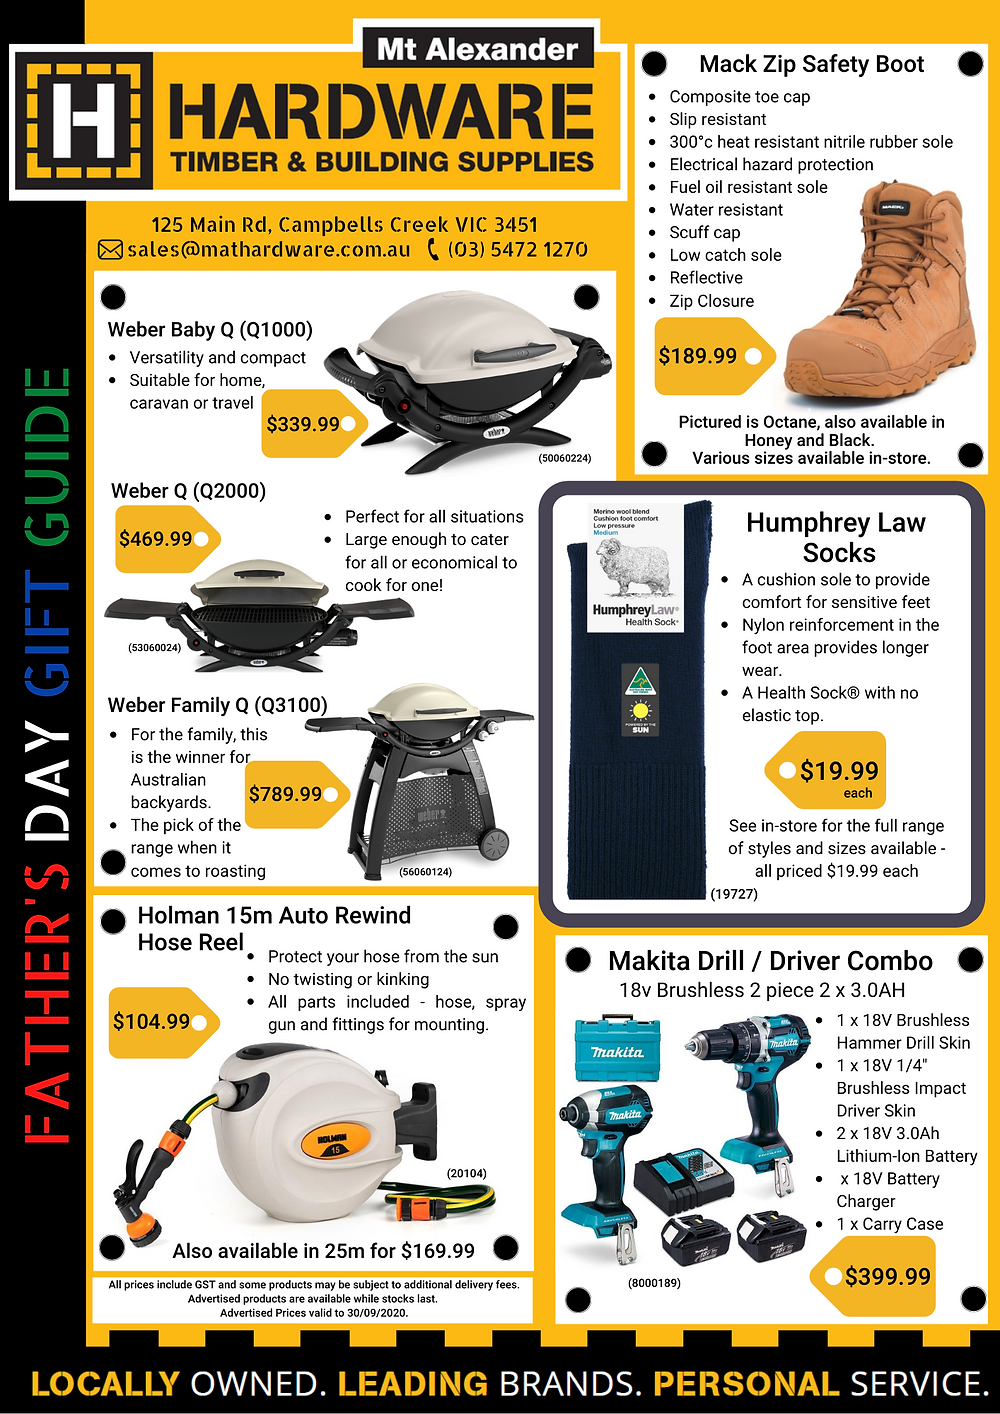 Father's Day Gift Guide 2020 Featuring Weber Q Series, Mack Boots, Humphrey Law Socks, Holman Hose Reel and Makita Drill and Driver Combo